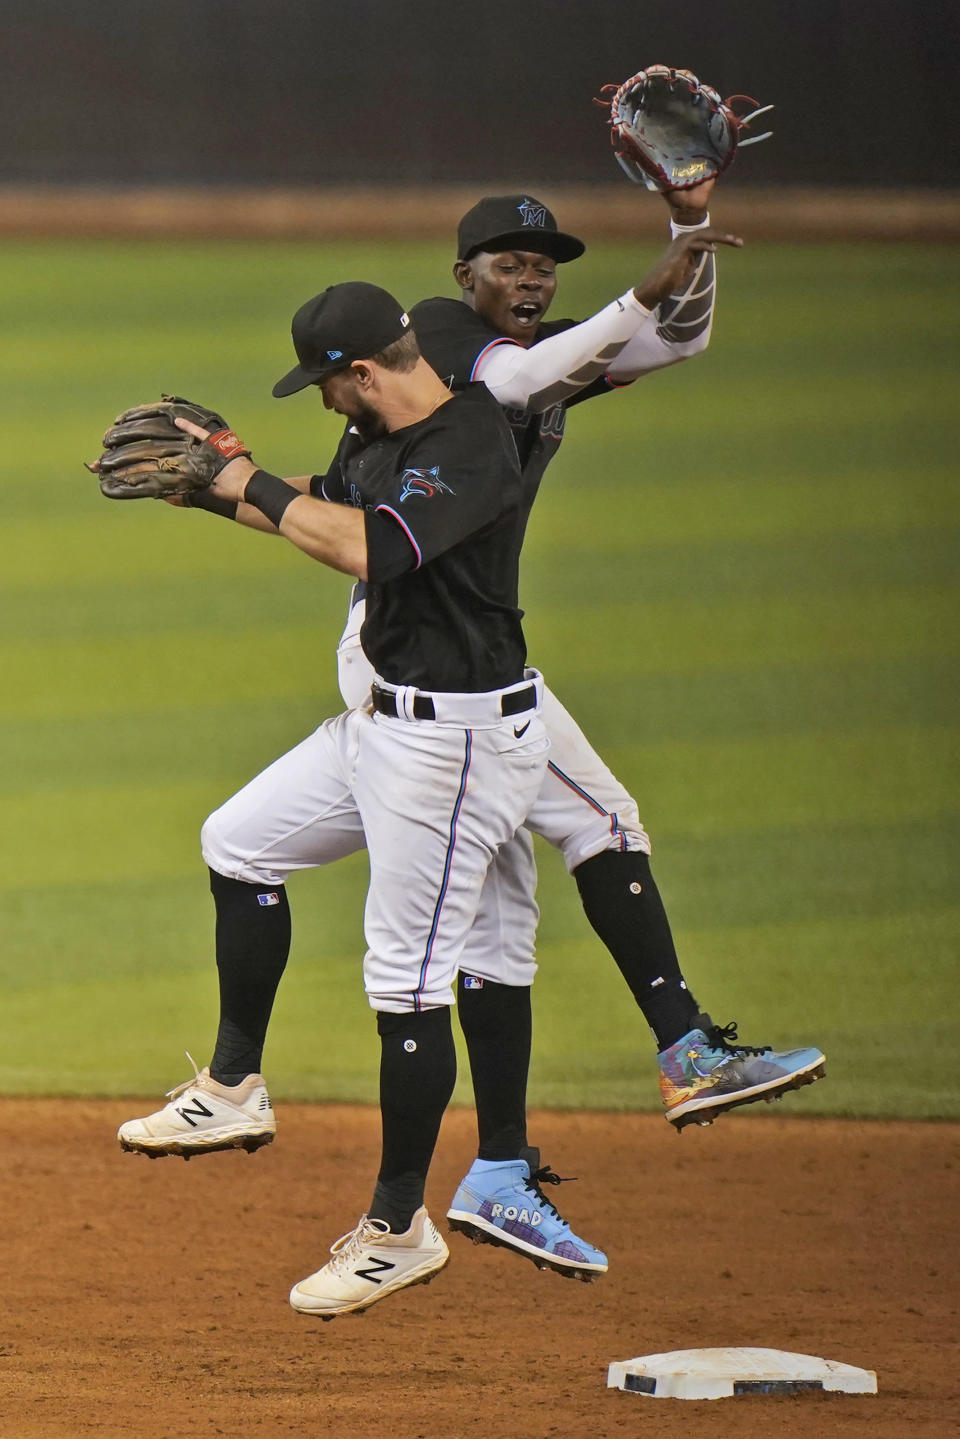 Miami Marlins' Jon Berti, foreground, and Jazz Chisholm Jr. celebrate after they defeated the Atlanta Braves in a baseball game, Saturday, June 12, 2021, in Miami. (AP Photo/Wilfredo Lee)